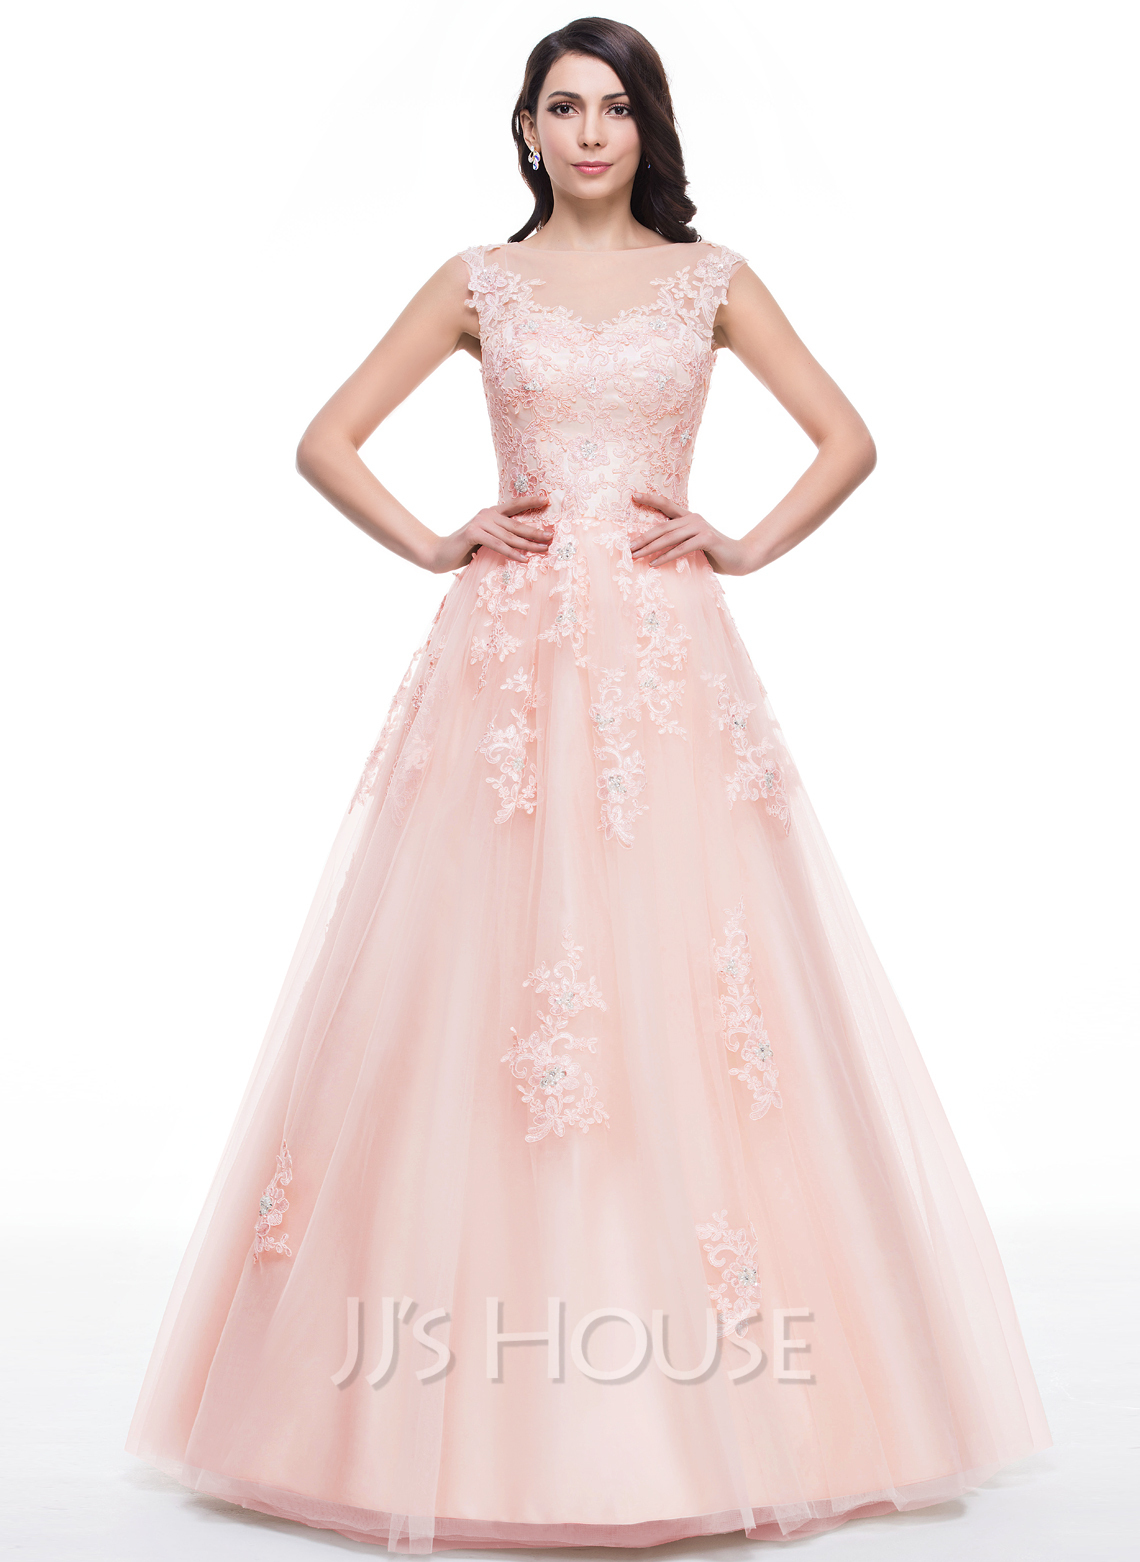 cd364b64d0dcb Ball-Gown Scoop Neck Floor-Length Tulle Prom Dresses With Beading Appliques  Lace Sequins. Loading zoom